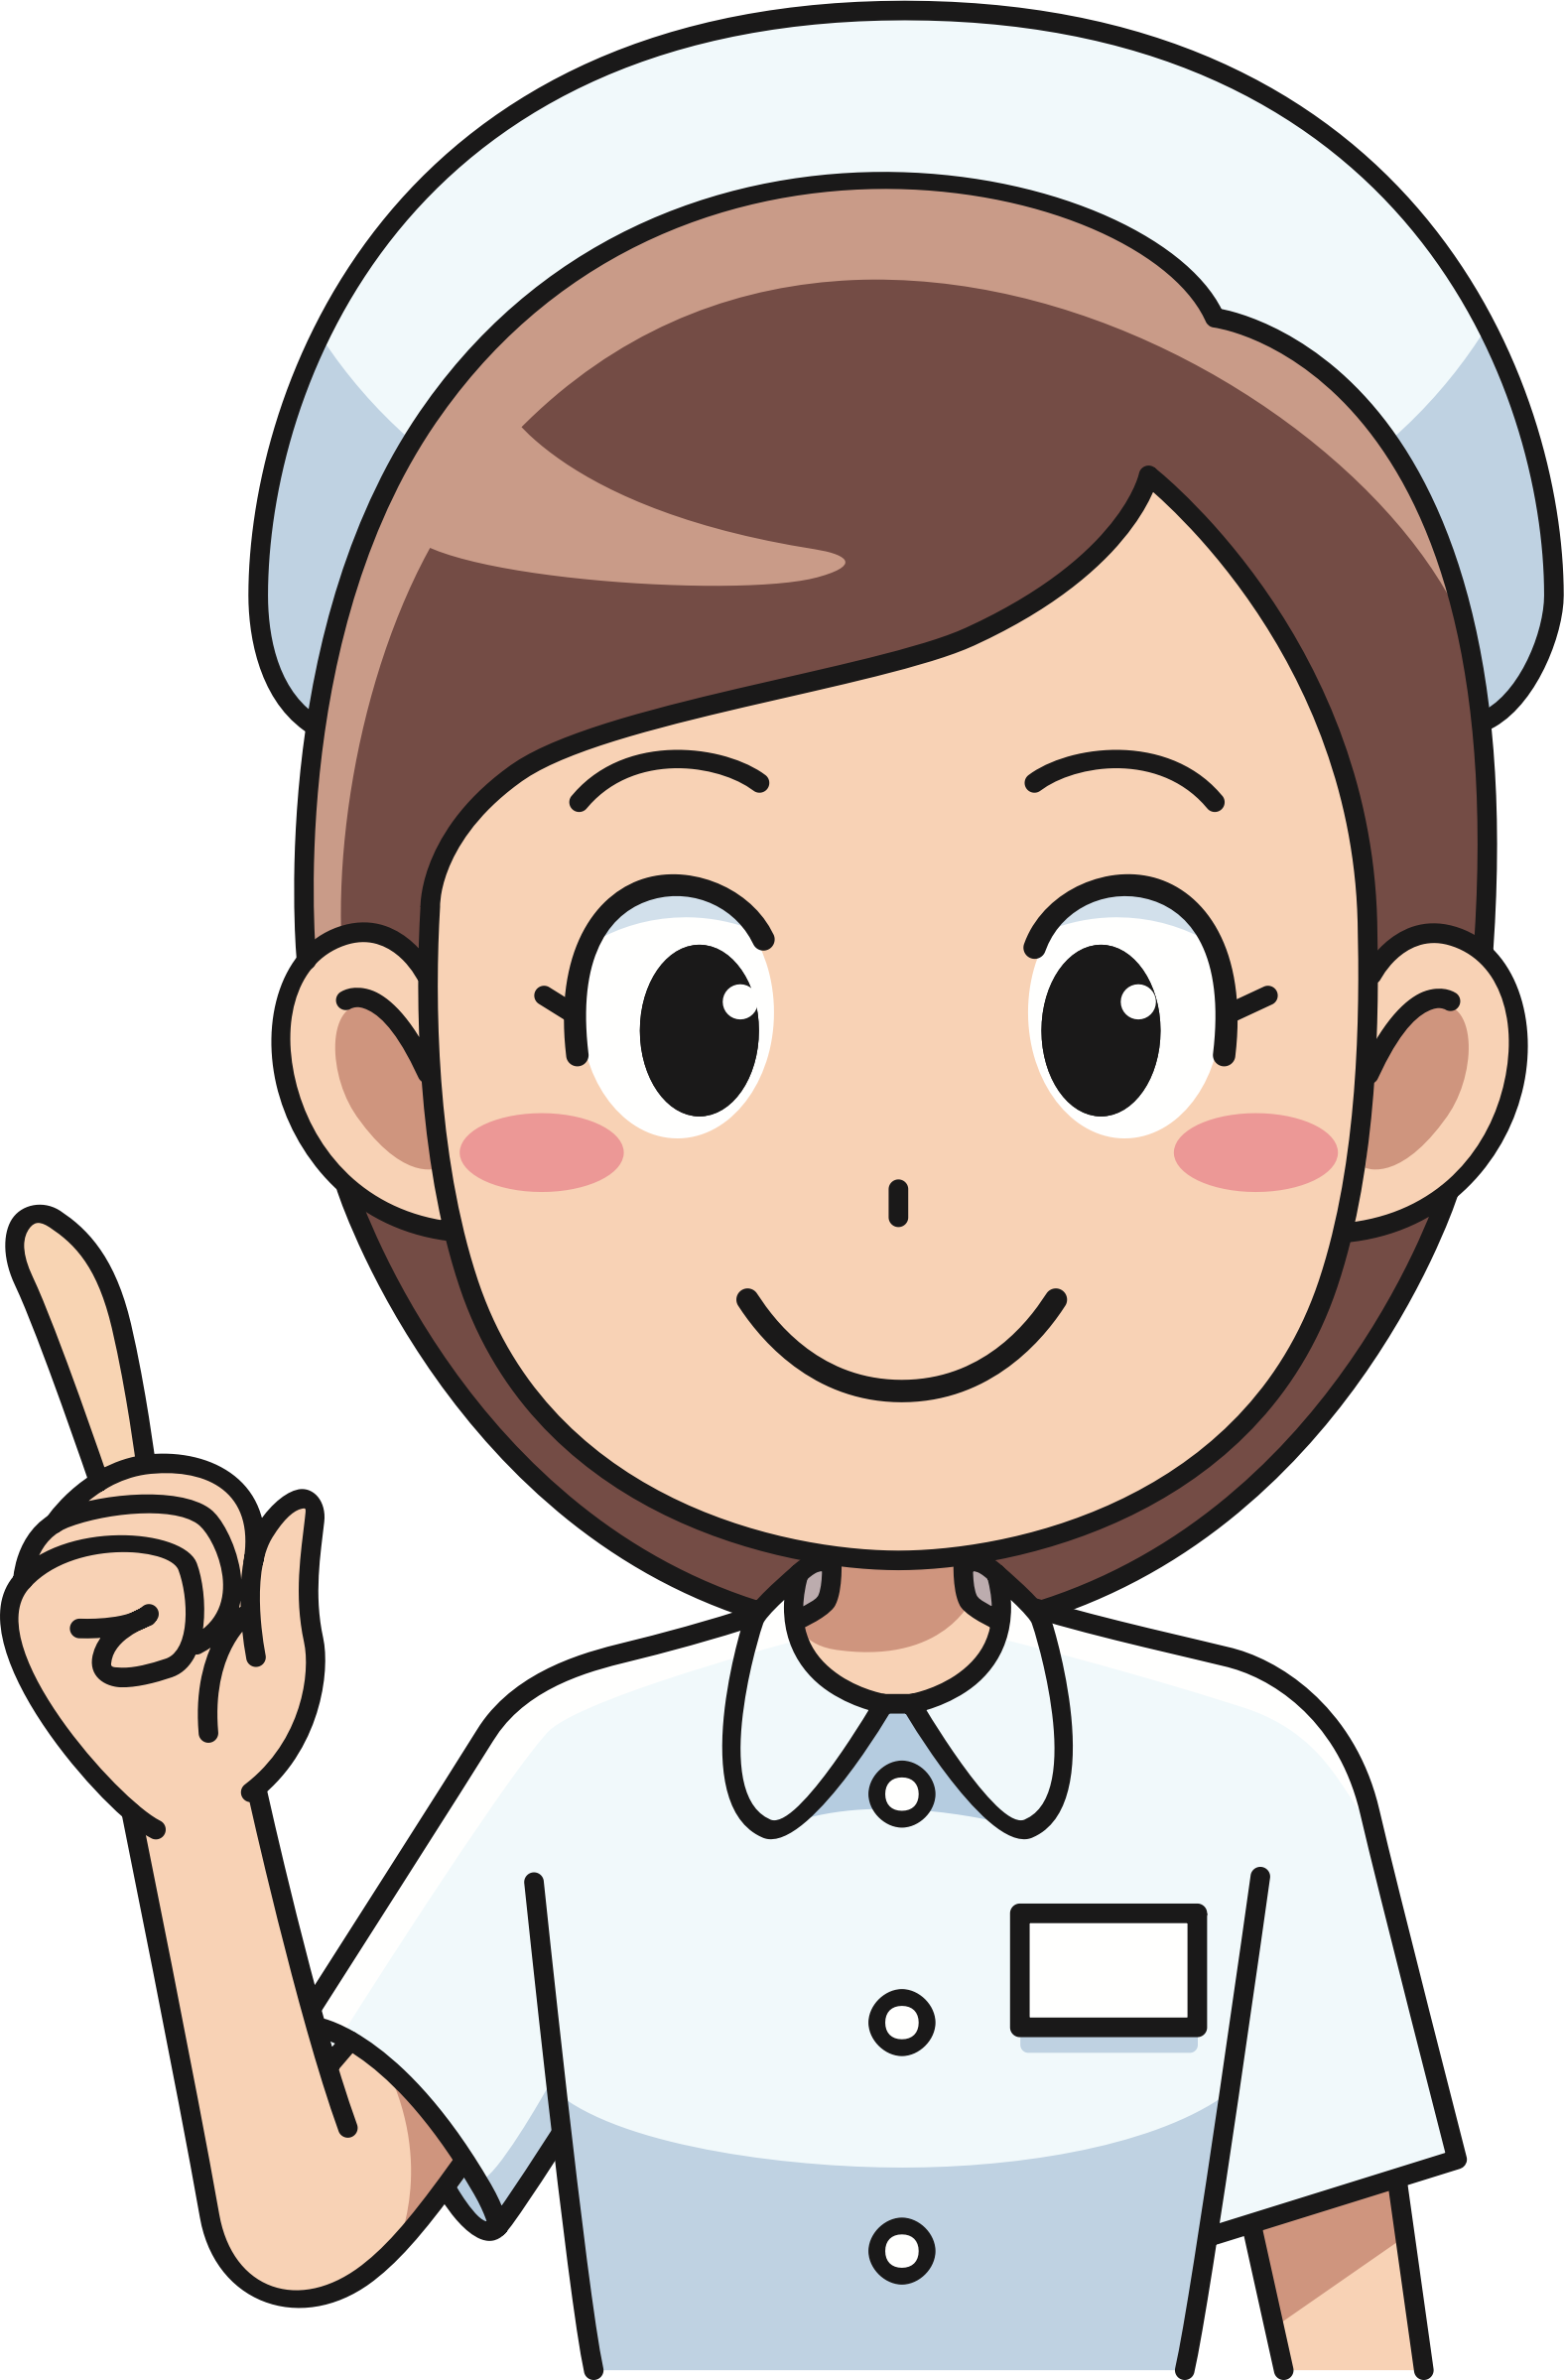 Cheerful big image png. Face clipart nurse